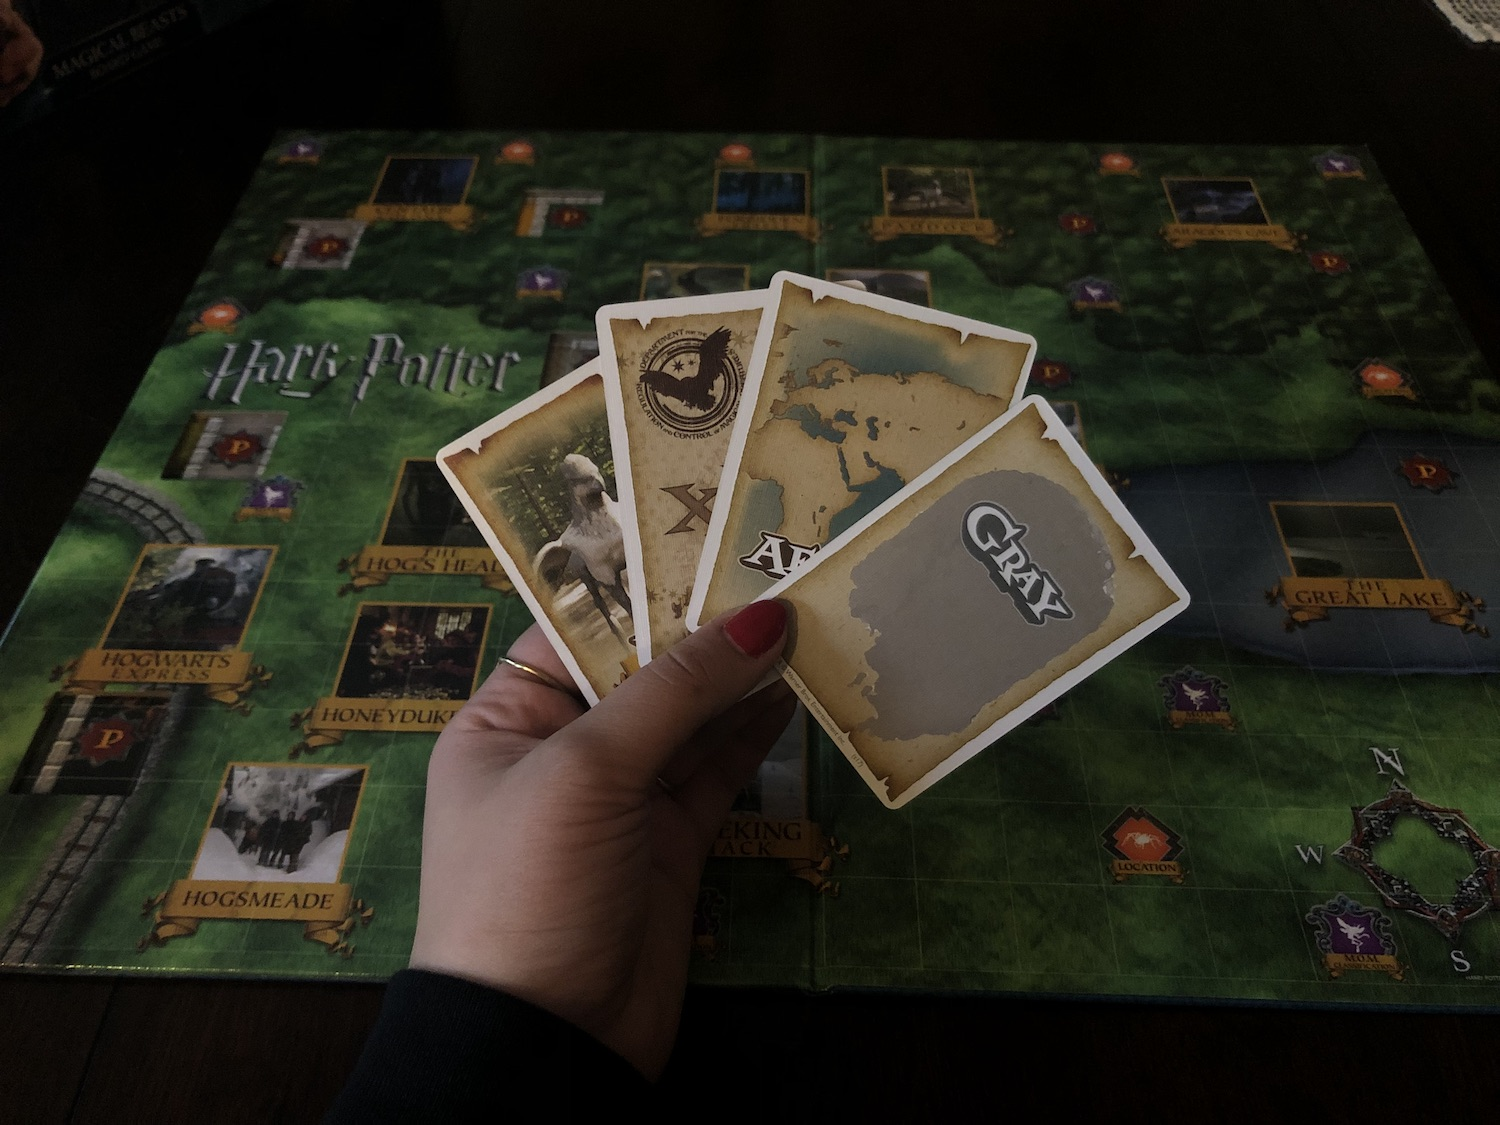 Harry Potter Magical Beasts – cards in hand